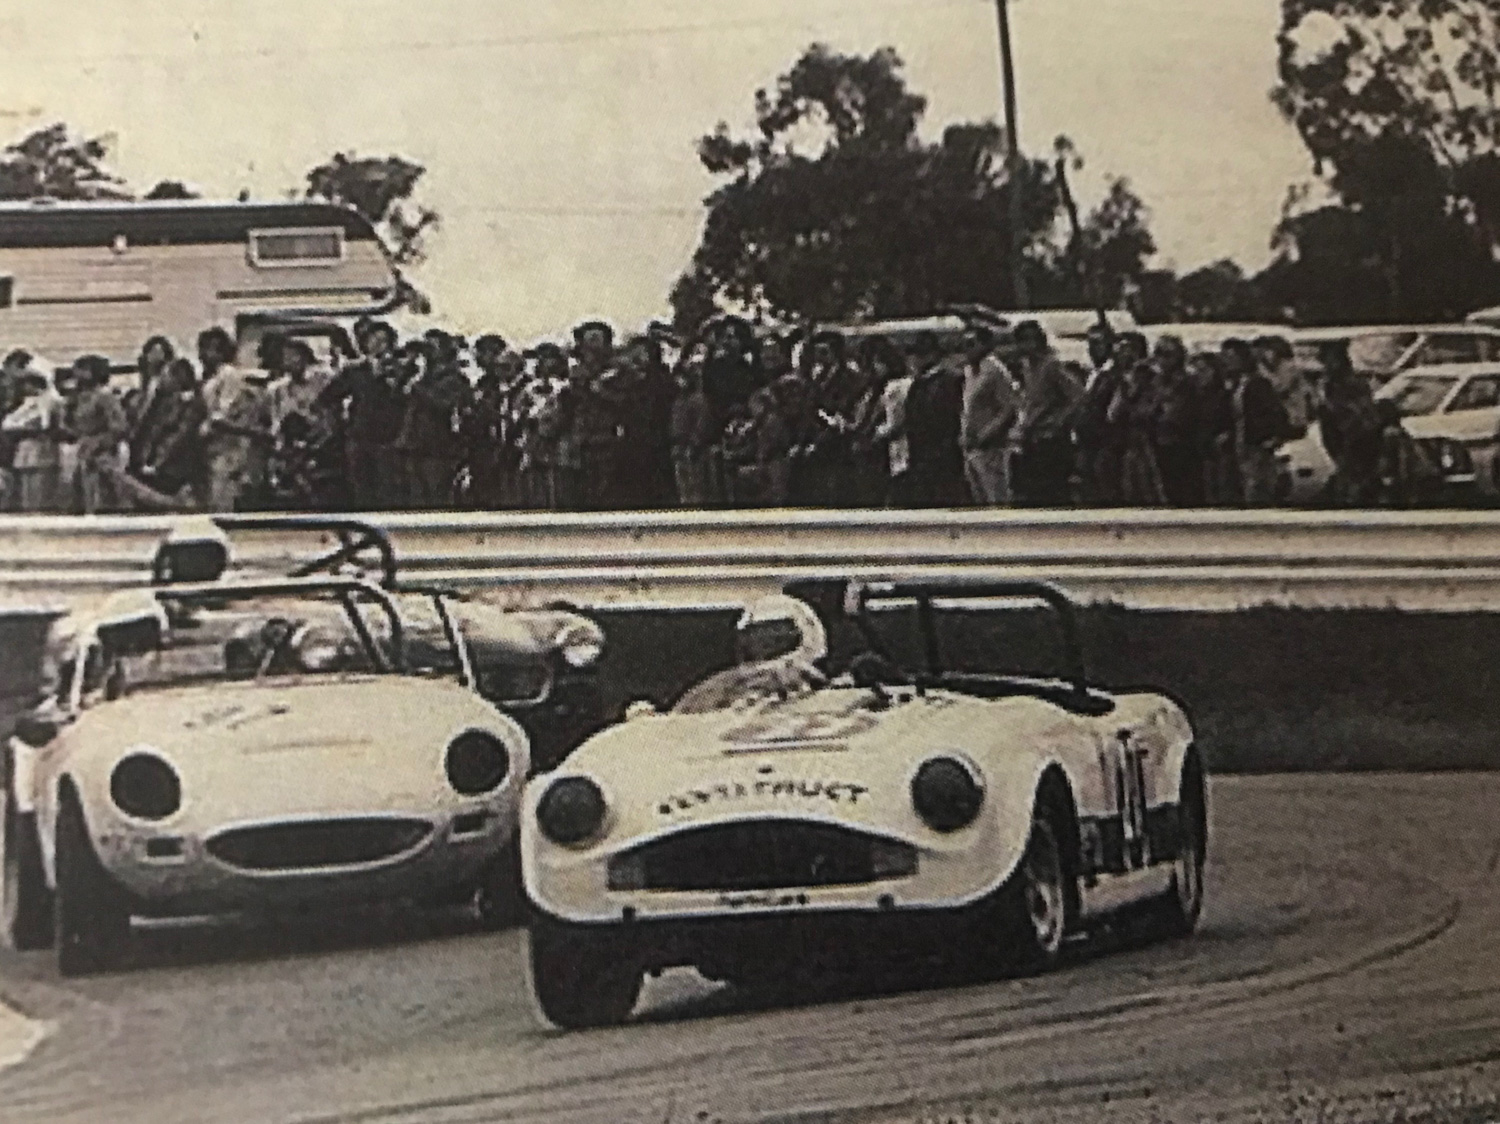 Ted Newsome, a past owner of Ruth's Turner, drives a different Turner in an Australian Road race, probably in the early 1970s.